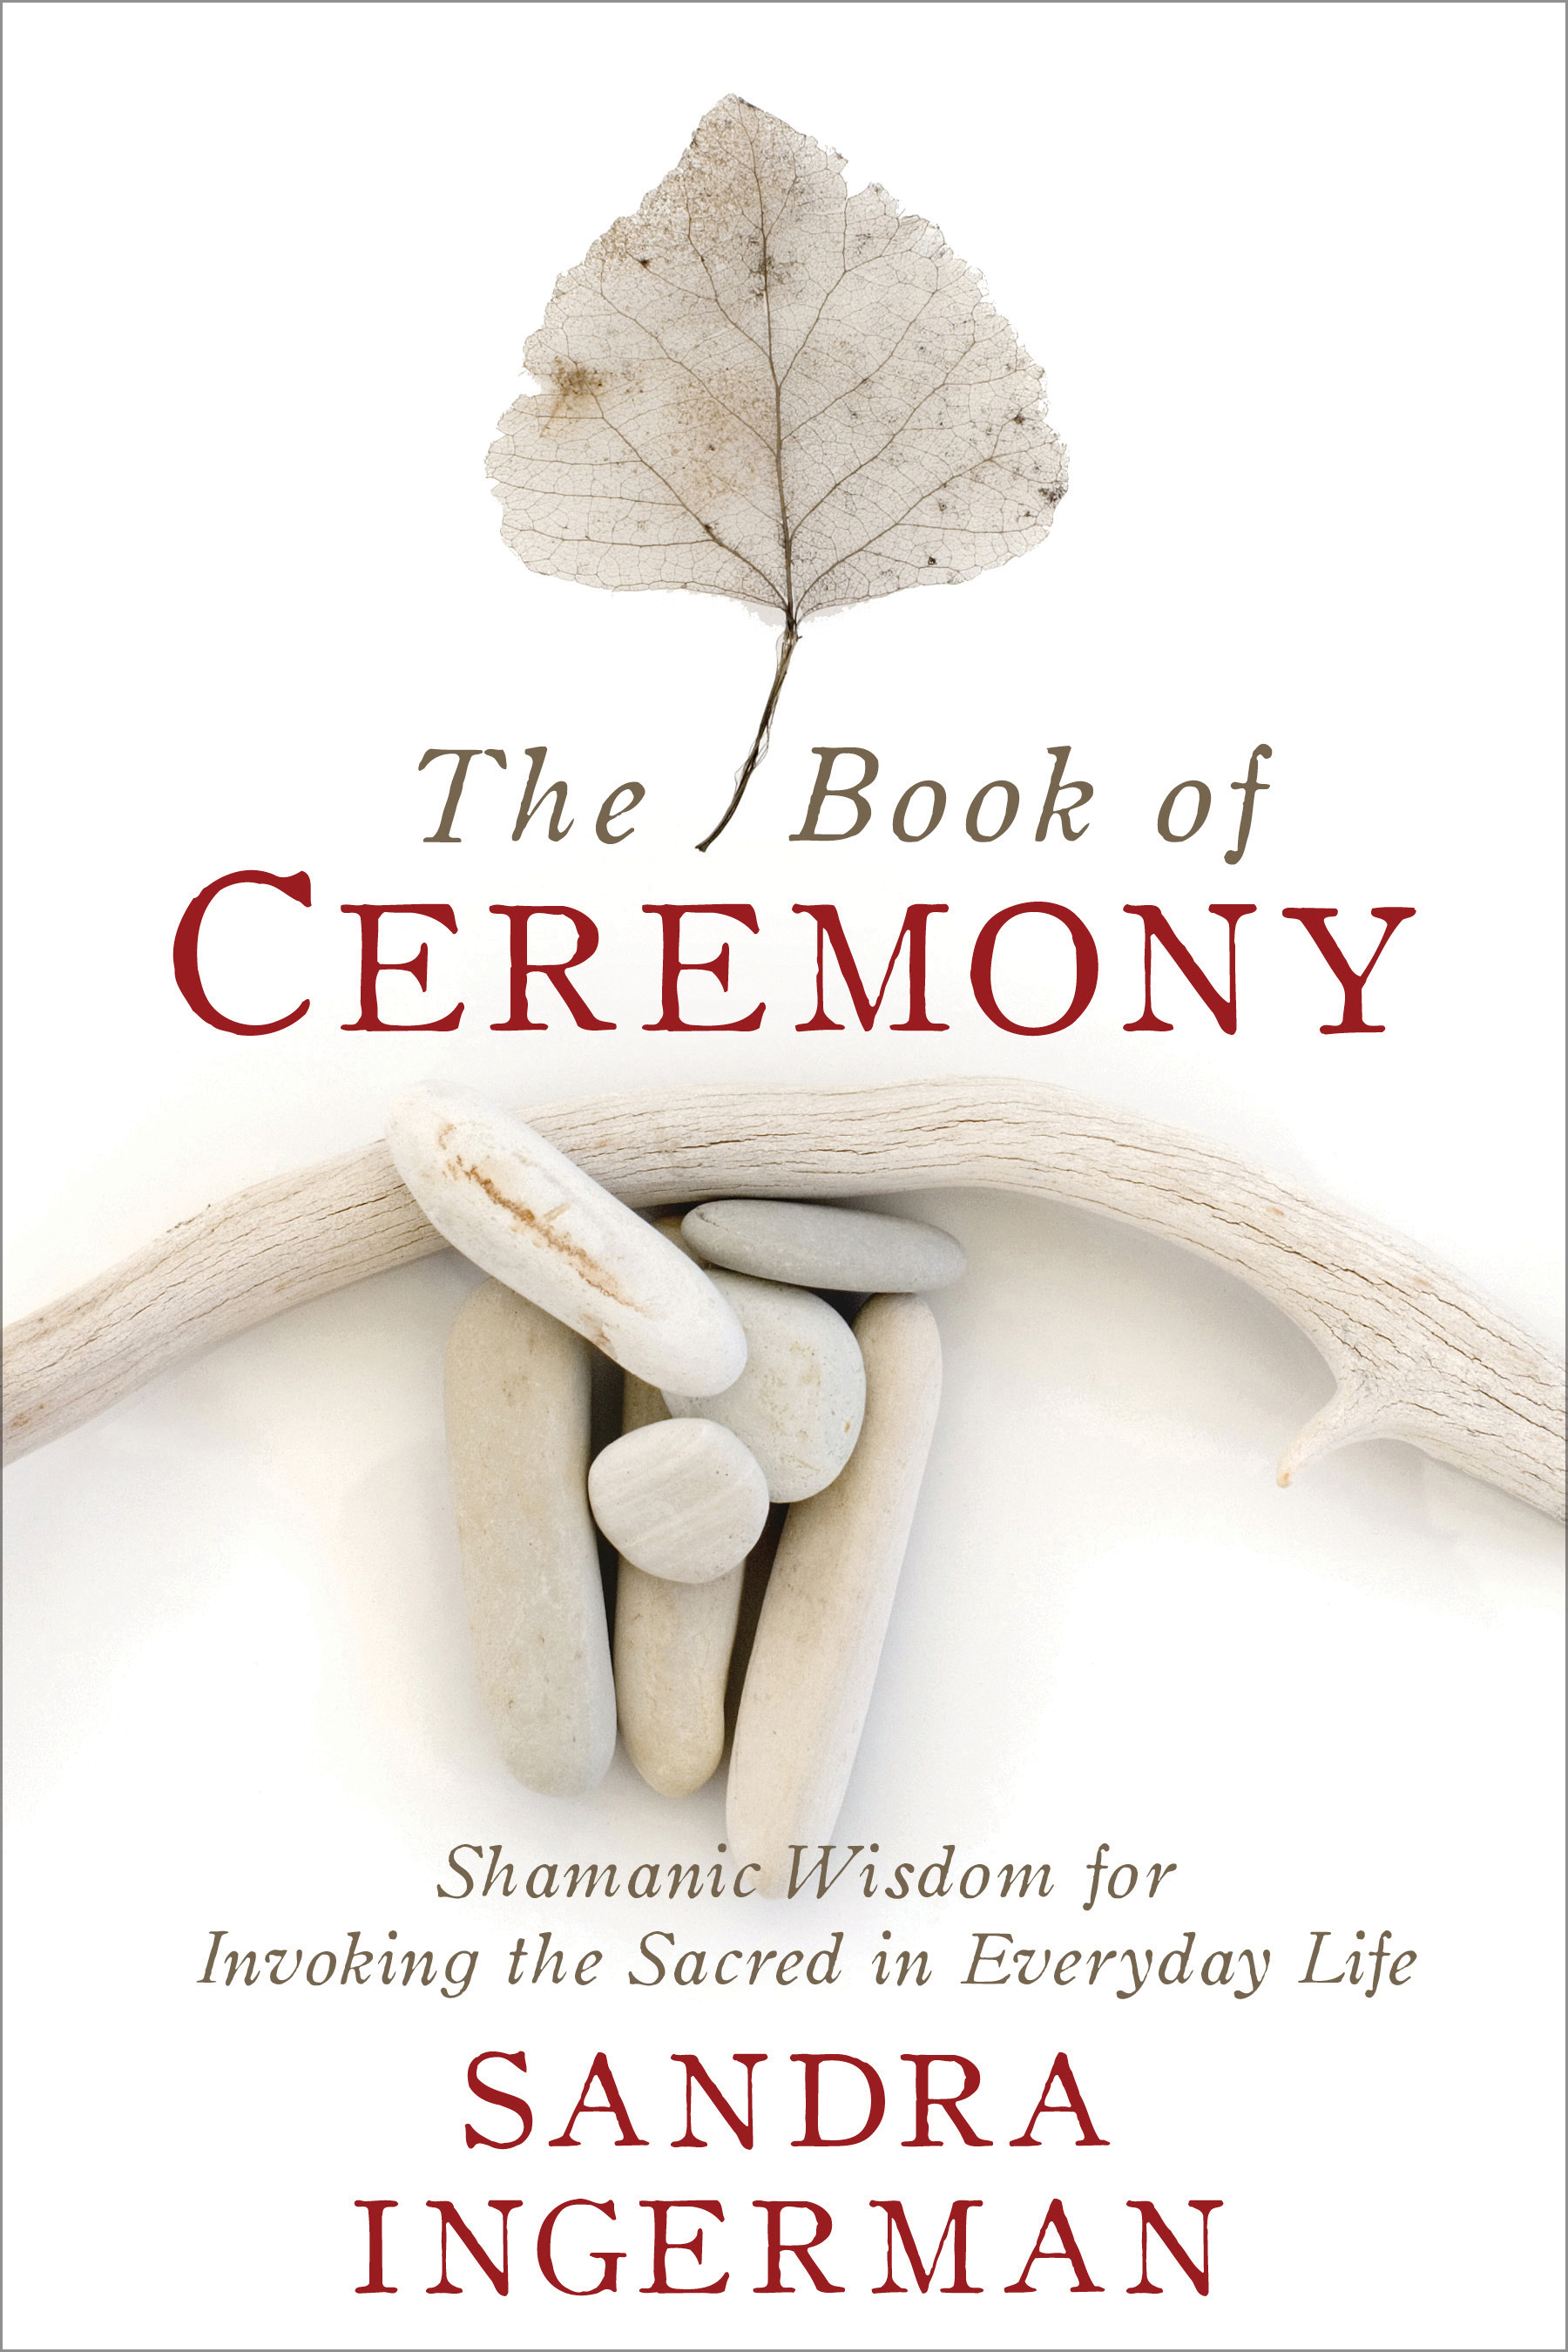 The Book of Ceremony A Ceremony to Greet the Cardinal Directions Sounds True Blog